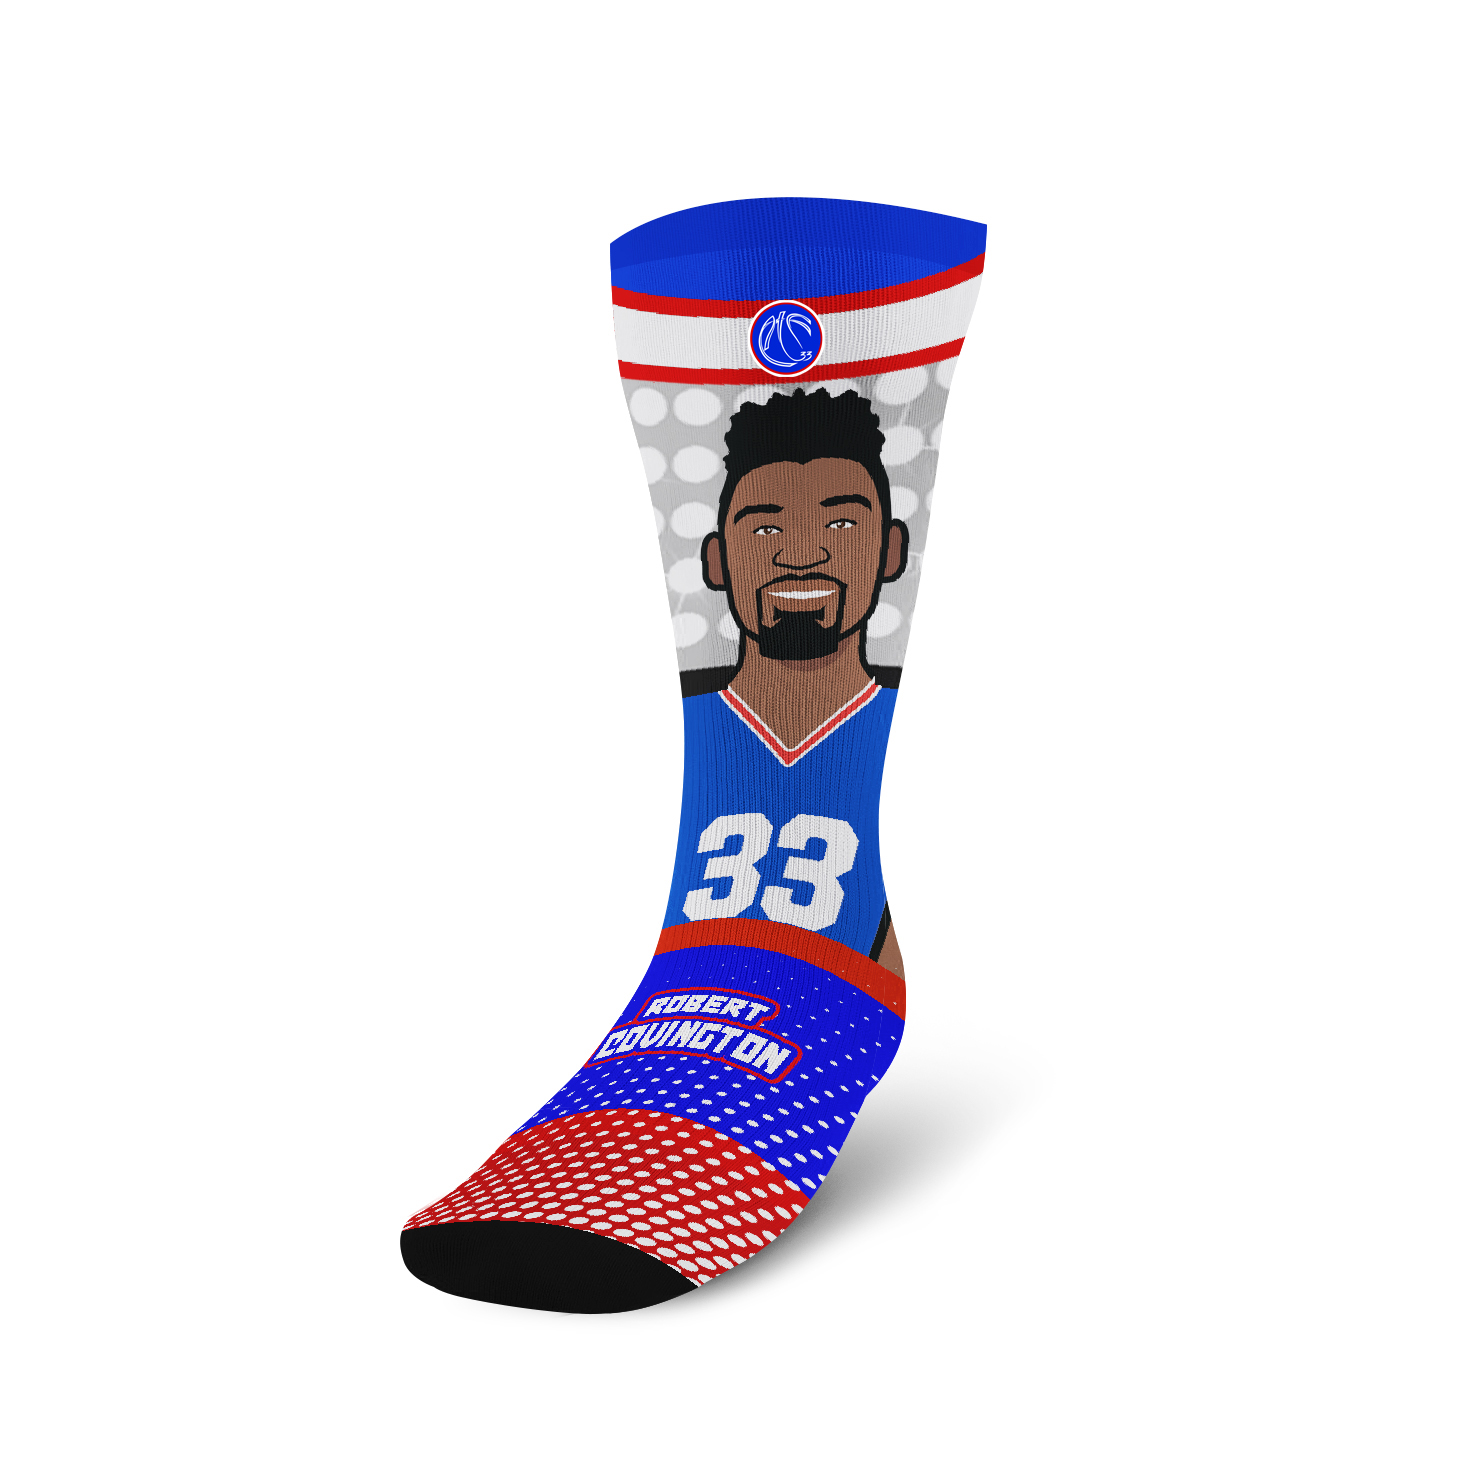 Robert-Covington-cartoon-sock